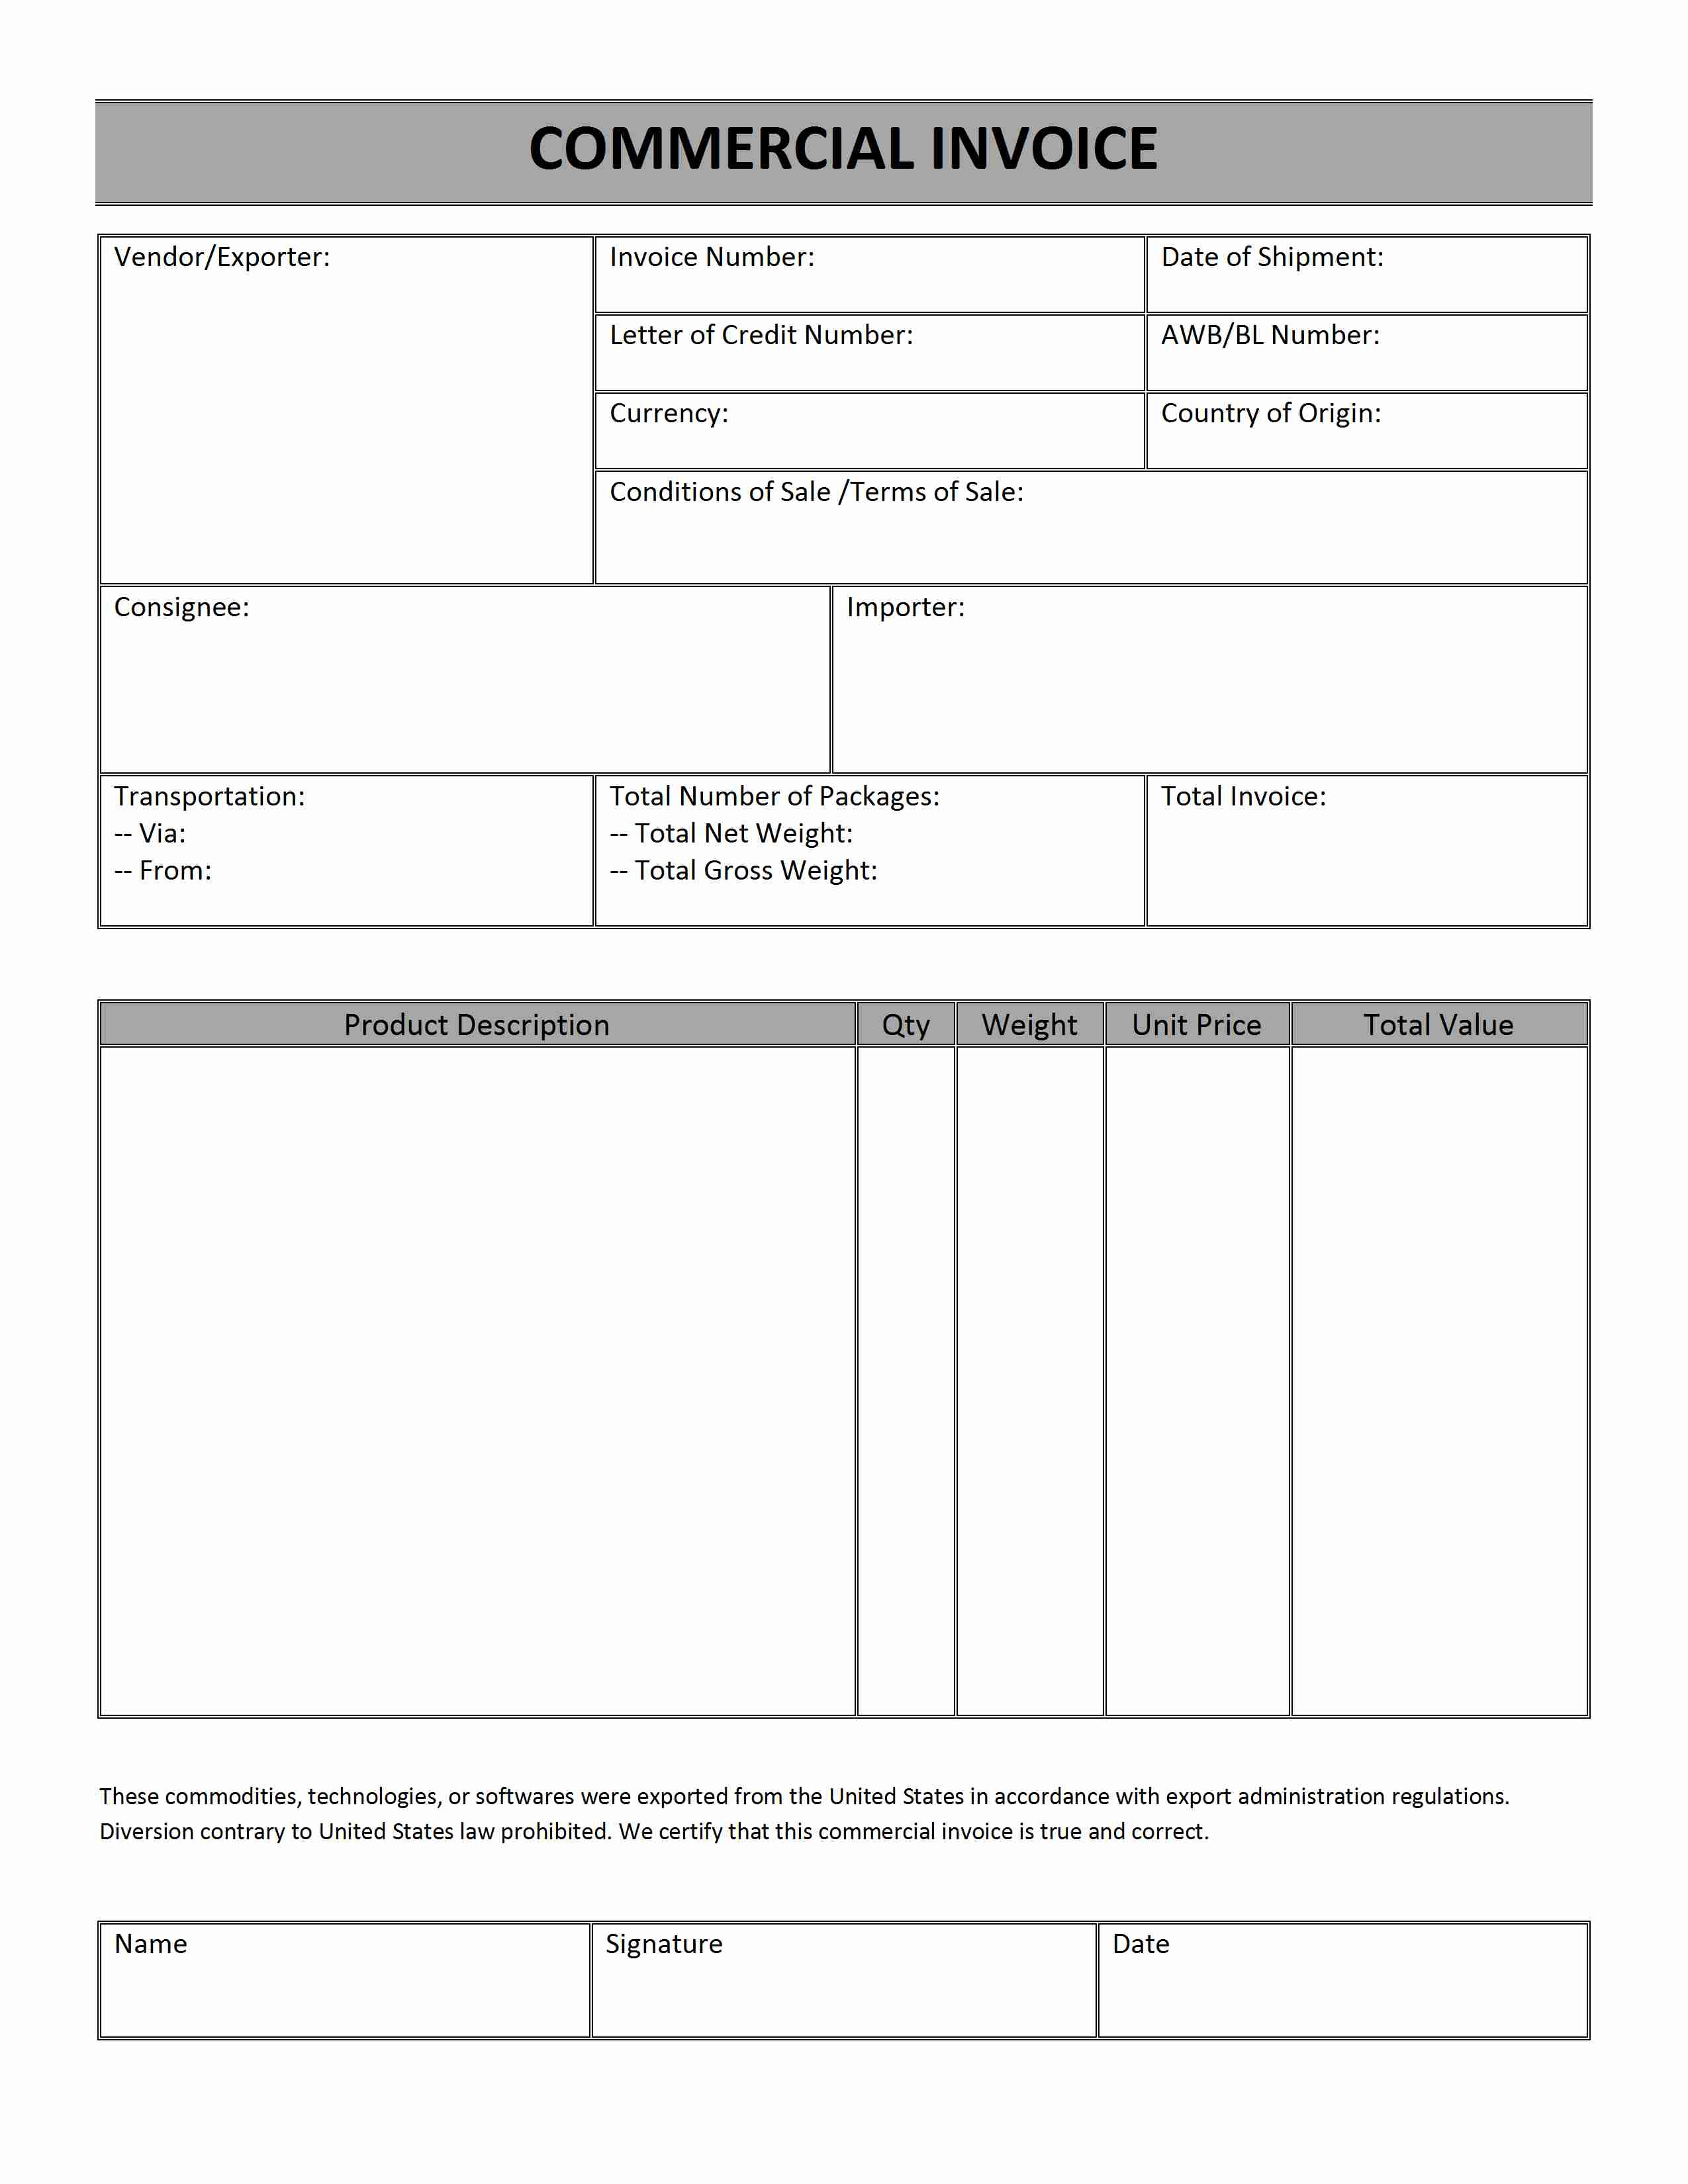 Soulfulpowerus  Prepossessing Printable Sales Invoice Simple Invoice Form Free Invoice  With Marvelous Printable Receipt Free  Free Printable Raffle Tickets  Receipt   Printable With Divine Bpa On Receipt Paper Also Acknowledgement Of Receipt Template In Addition Create Fake Receipt And Cash Receipt Template Excel As Well As Receipt Of Goods Template Additionally Cash Receipts Journal Template From Happytomco With Soulfulpowerus  Marvelous Printable Sales Invoice Simple Invoice Form Free Invoice  With Divine Printable Receipt Free  Free Printable Raffle Tickets  Receipt   Printable And Prepossessing Bpa On Receipt Paper Also Acknowledgement Of Receipt Template In Addition Create Fake Receipt From Happytomco